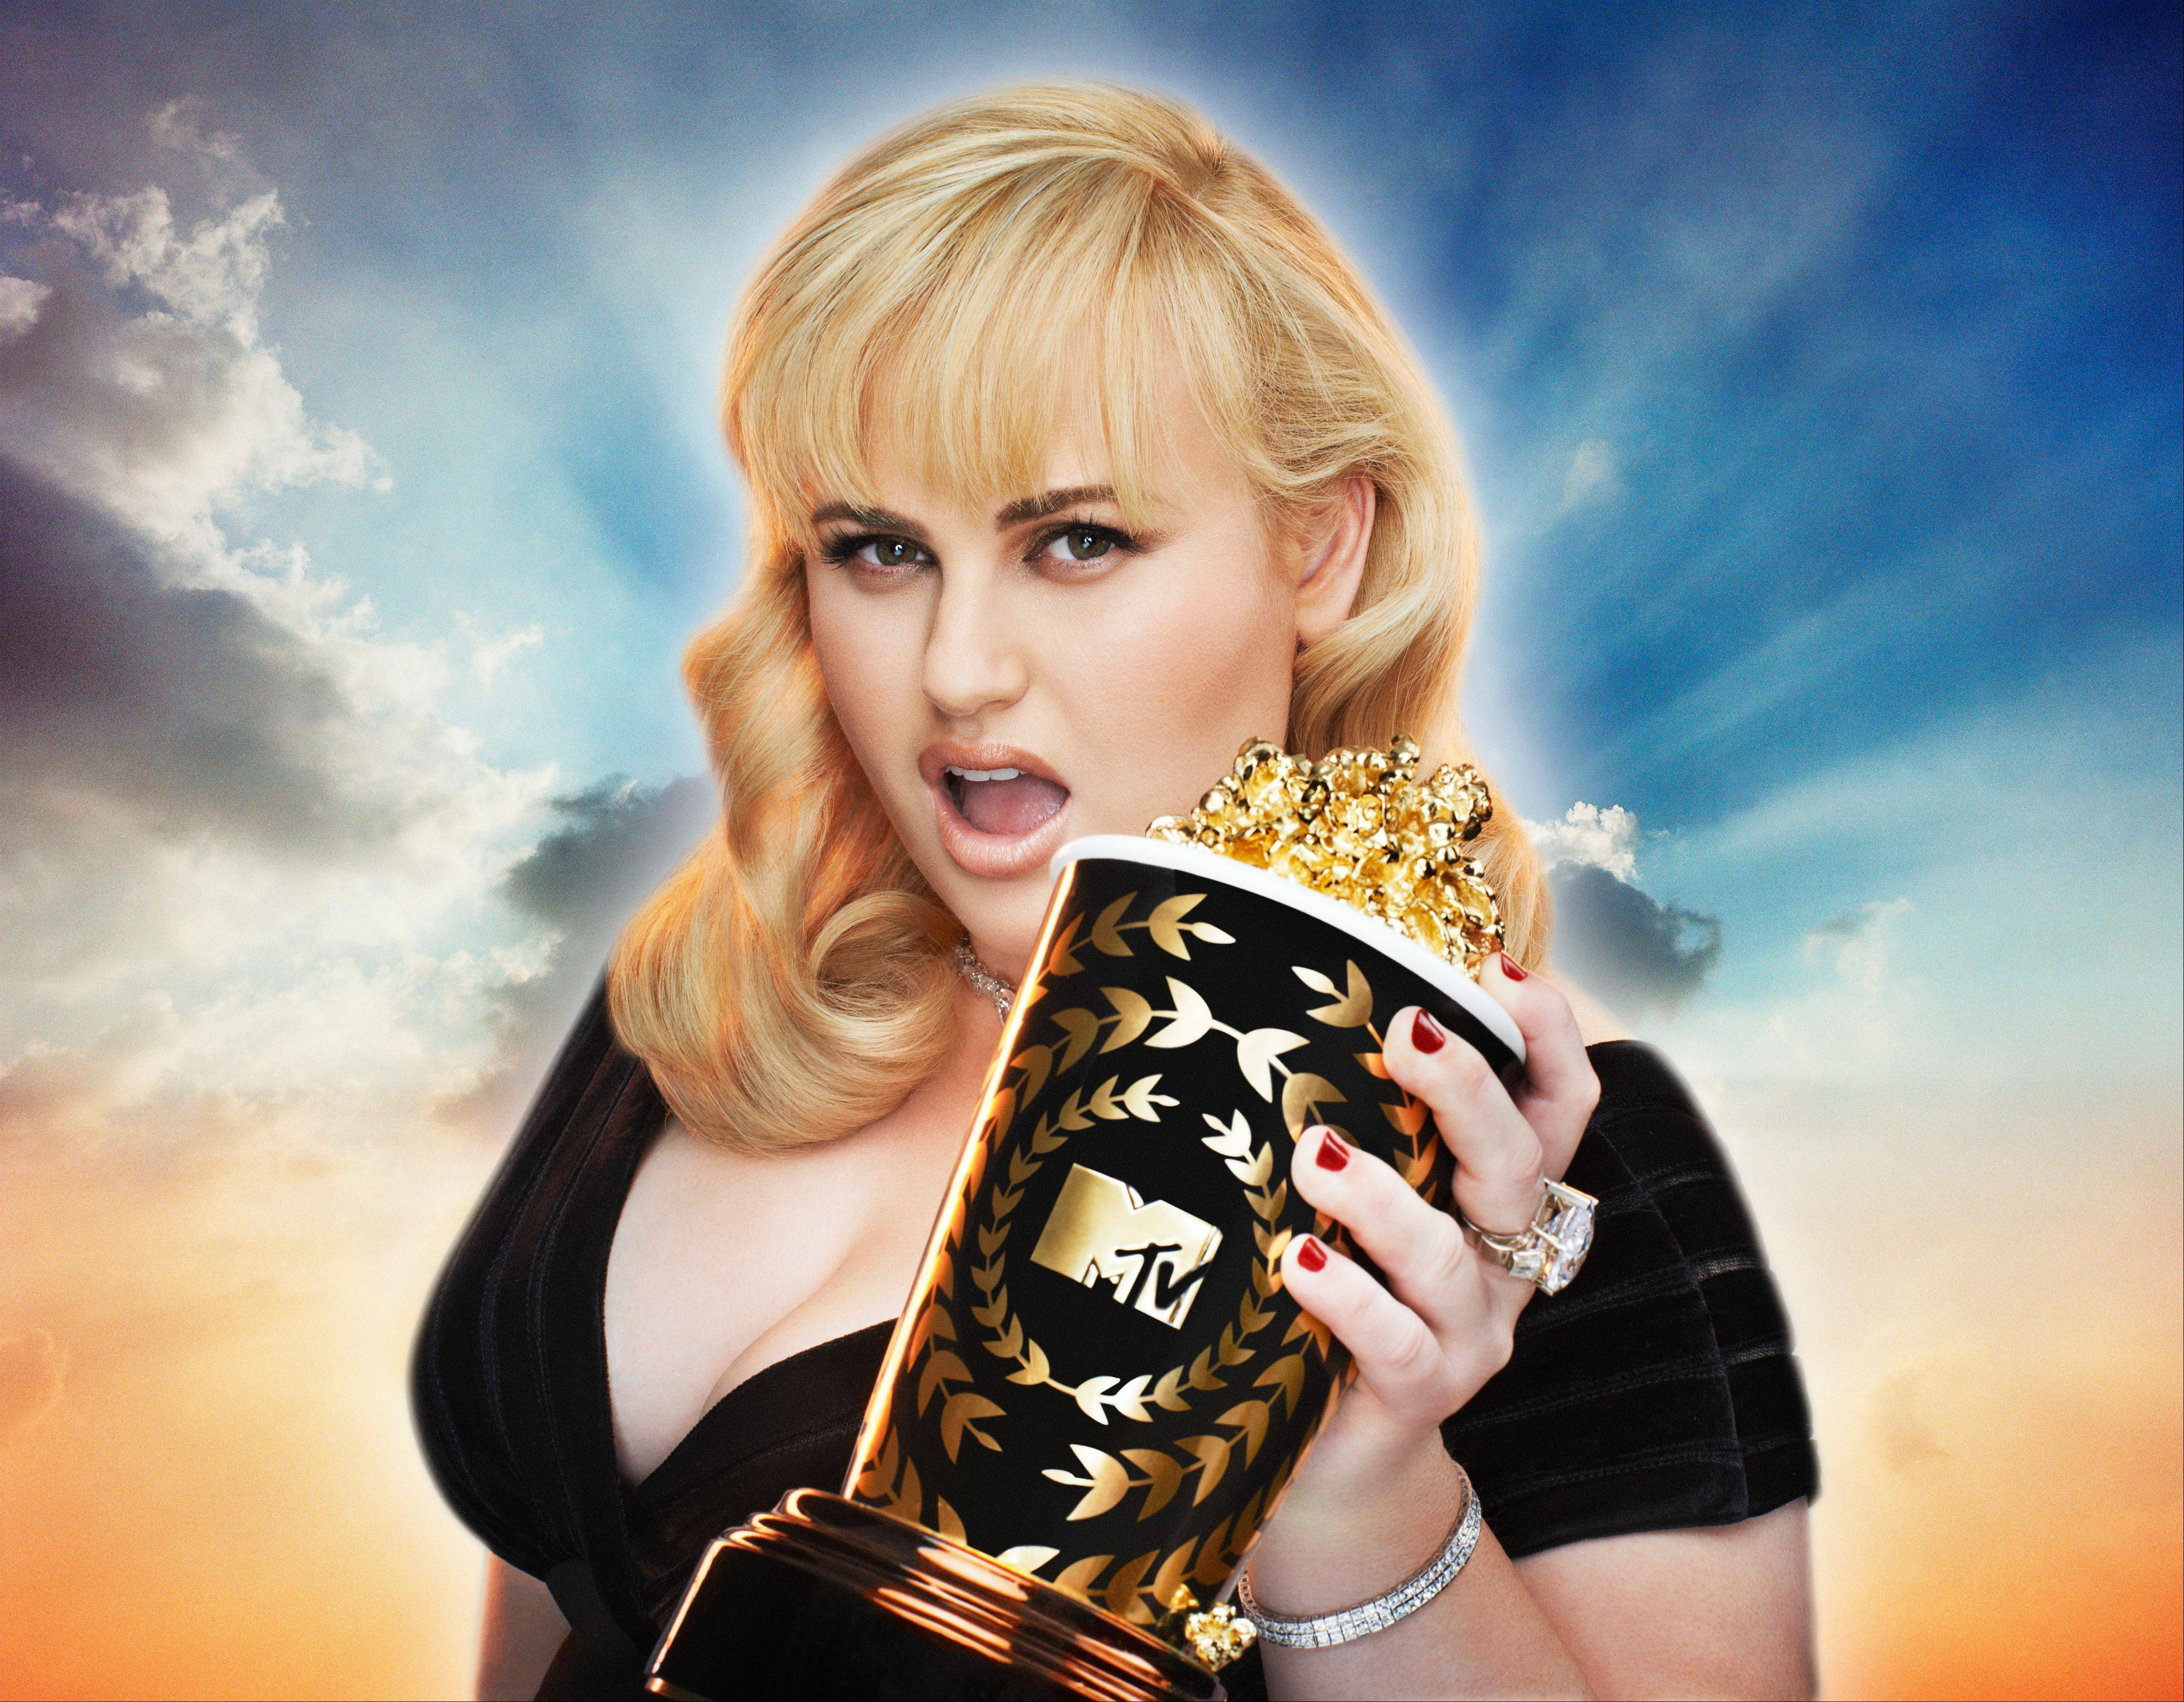 Rebel Wilson hosts the MTV Movie Awards, airing Sunday, April 14.